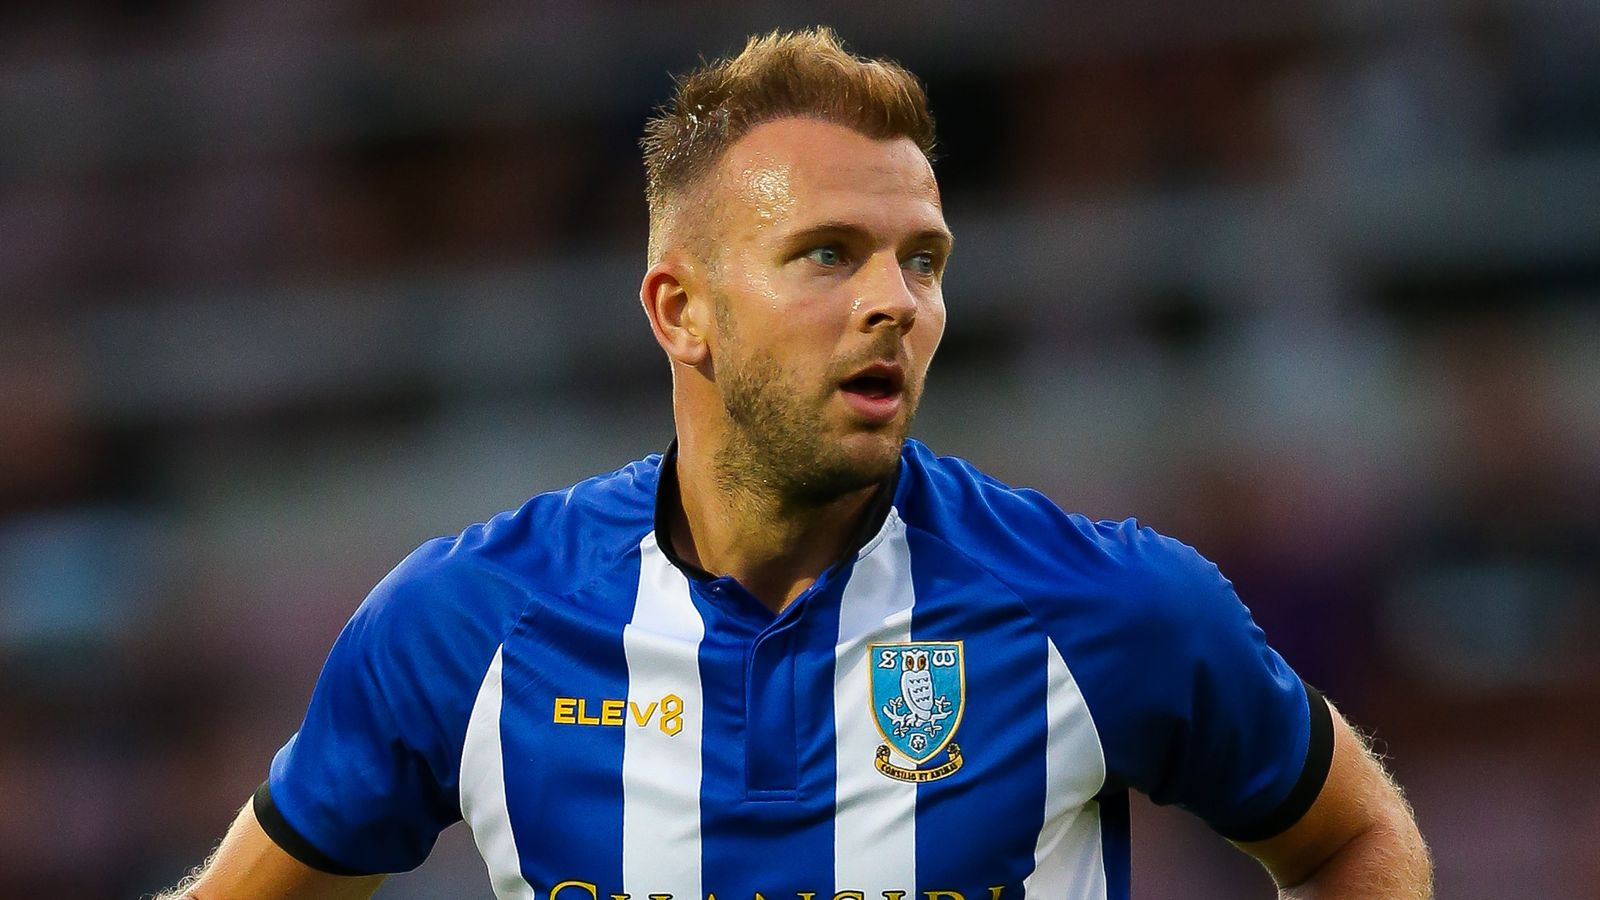 Nottingham Forest 0-4 Sheffield Wednesday: Jordan Rhodes hits hat-trick in thumping Owls win